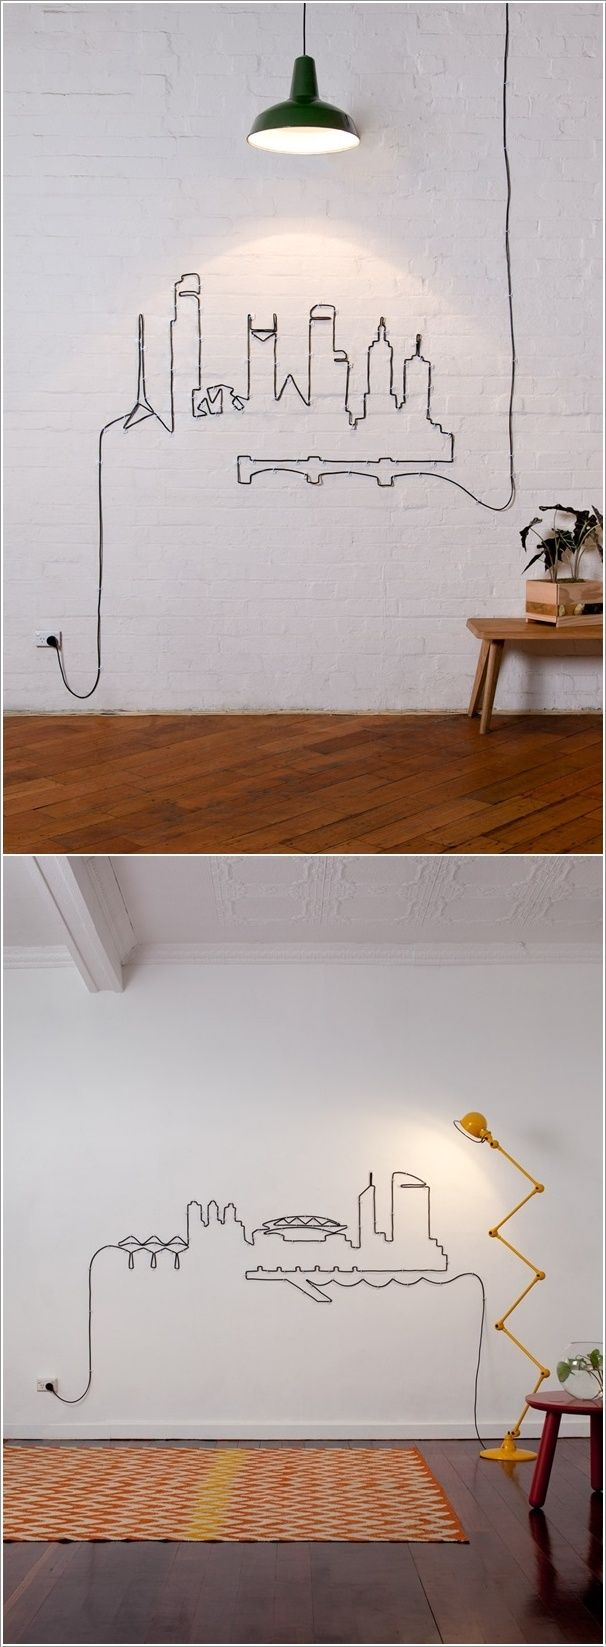 Best thing ever to do with extra long cords going across rooms.